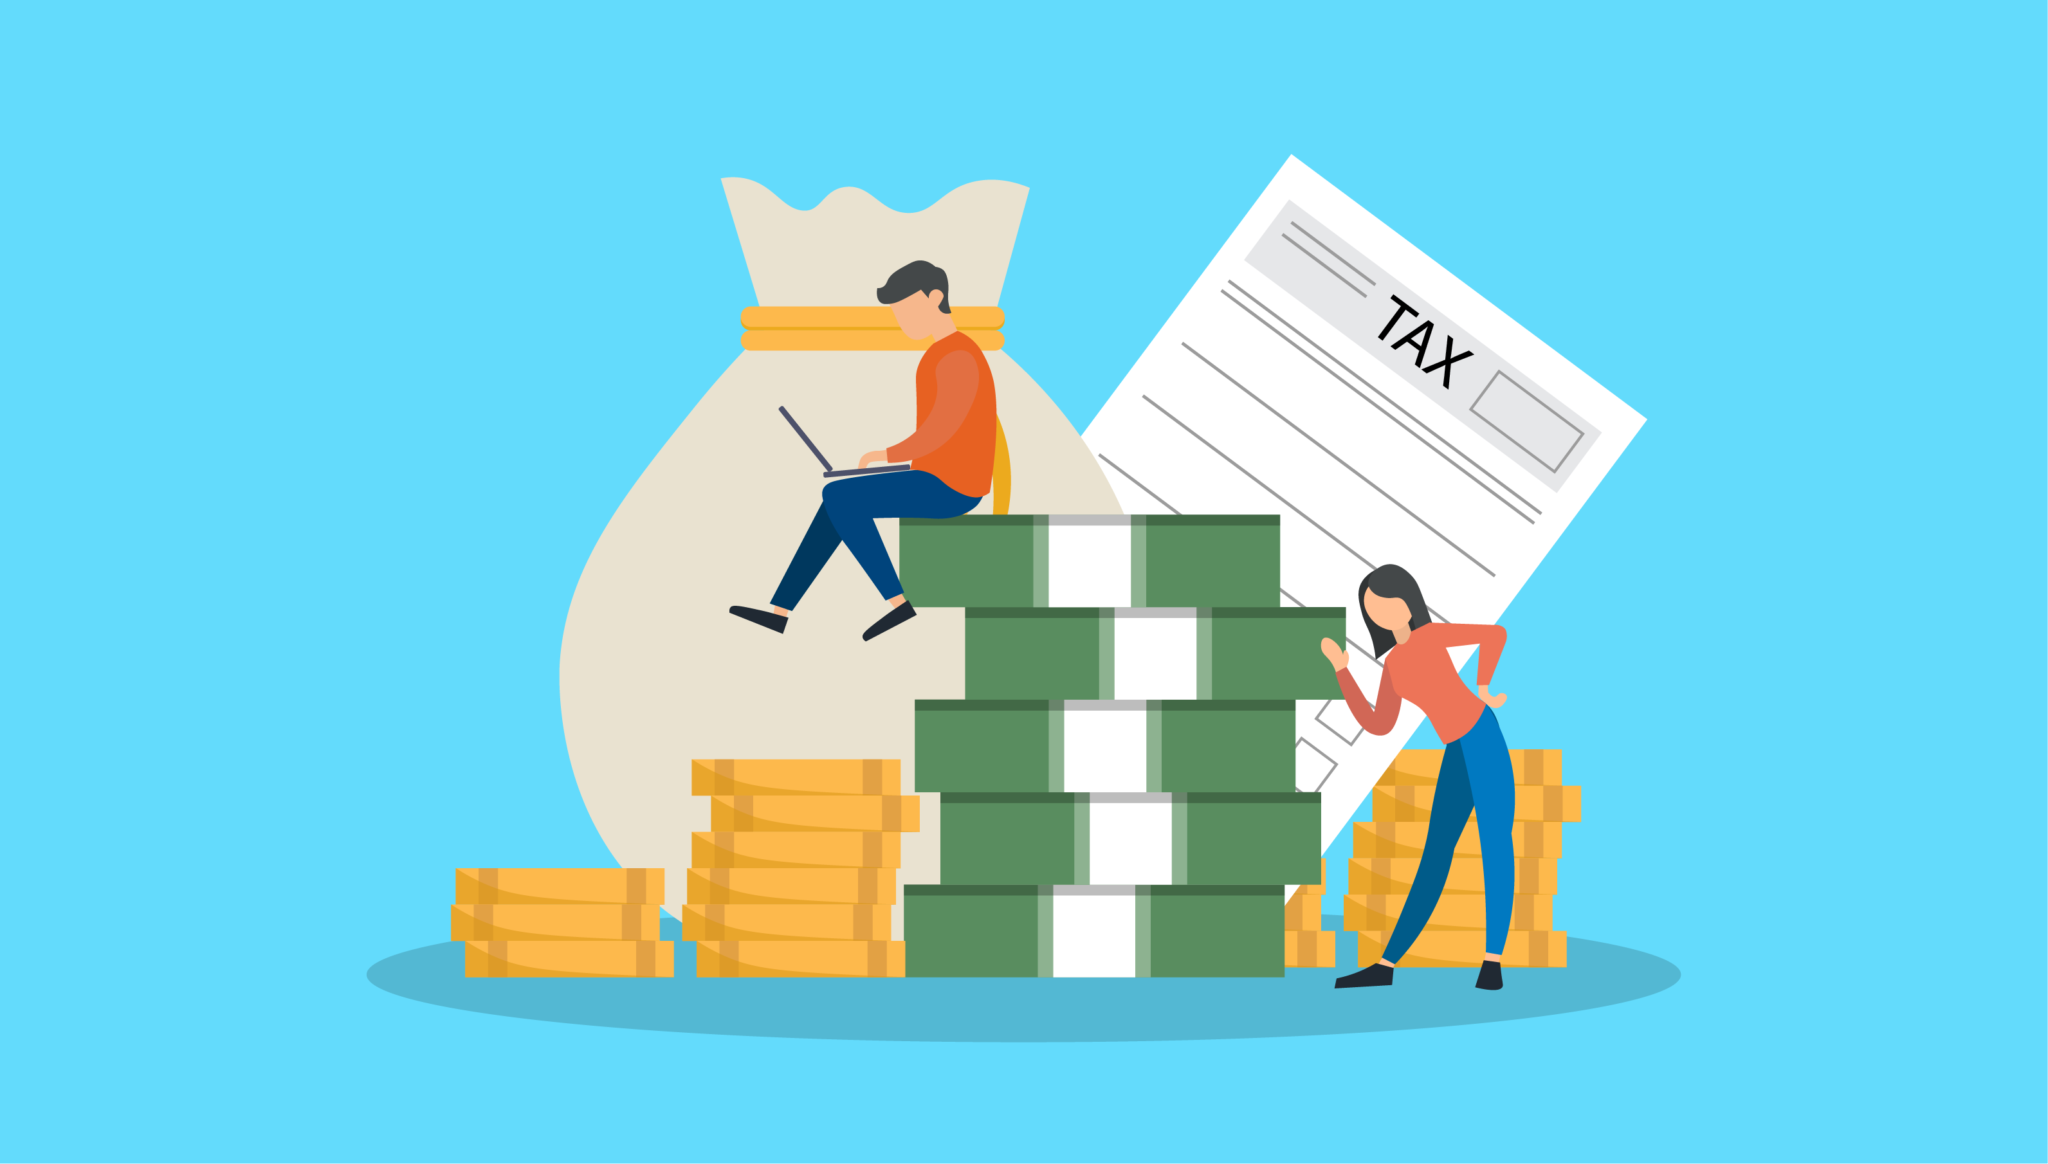 UPDATED 2021: BIR Form 2303, or the Certificate of Registration, is the Key Tax Compliance Document for PH Businesses – Here's Why!